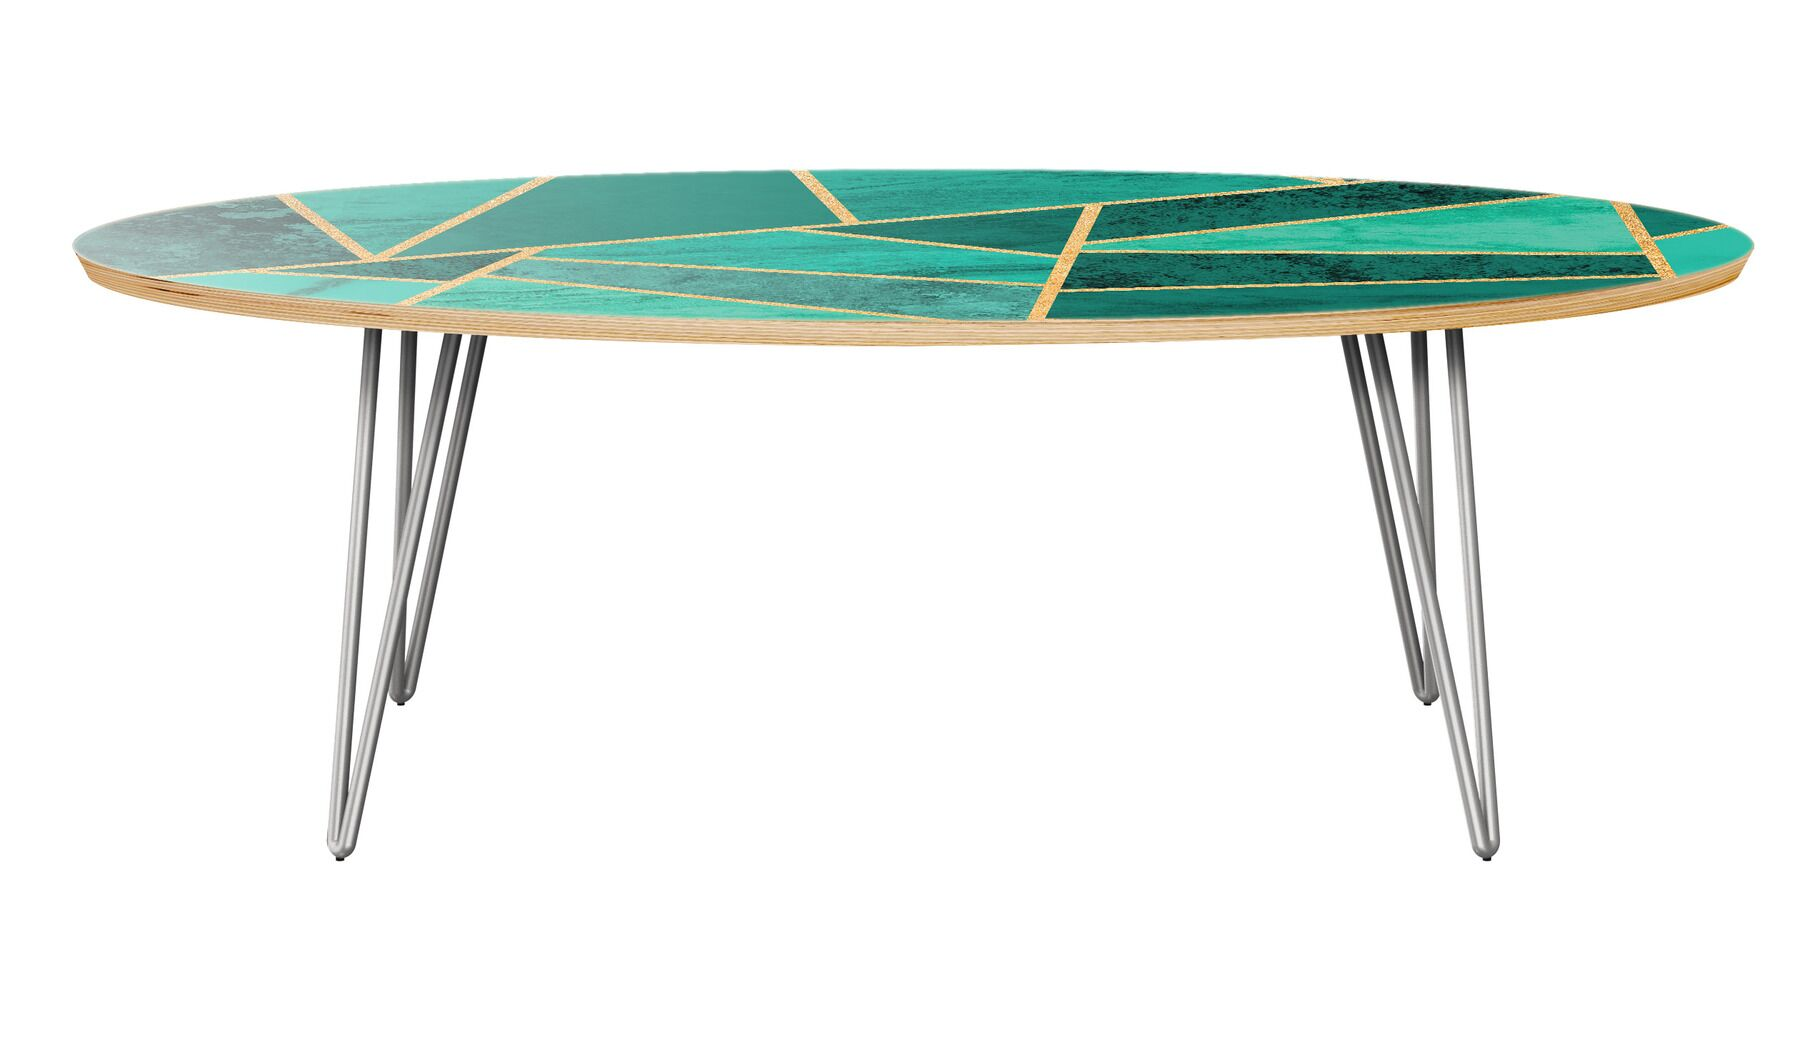 Mcgill Coffee Table Table Base Color: Chrome, Table Top Color: Natural/Green